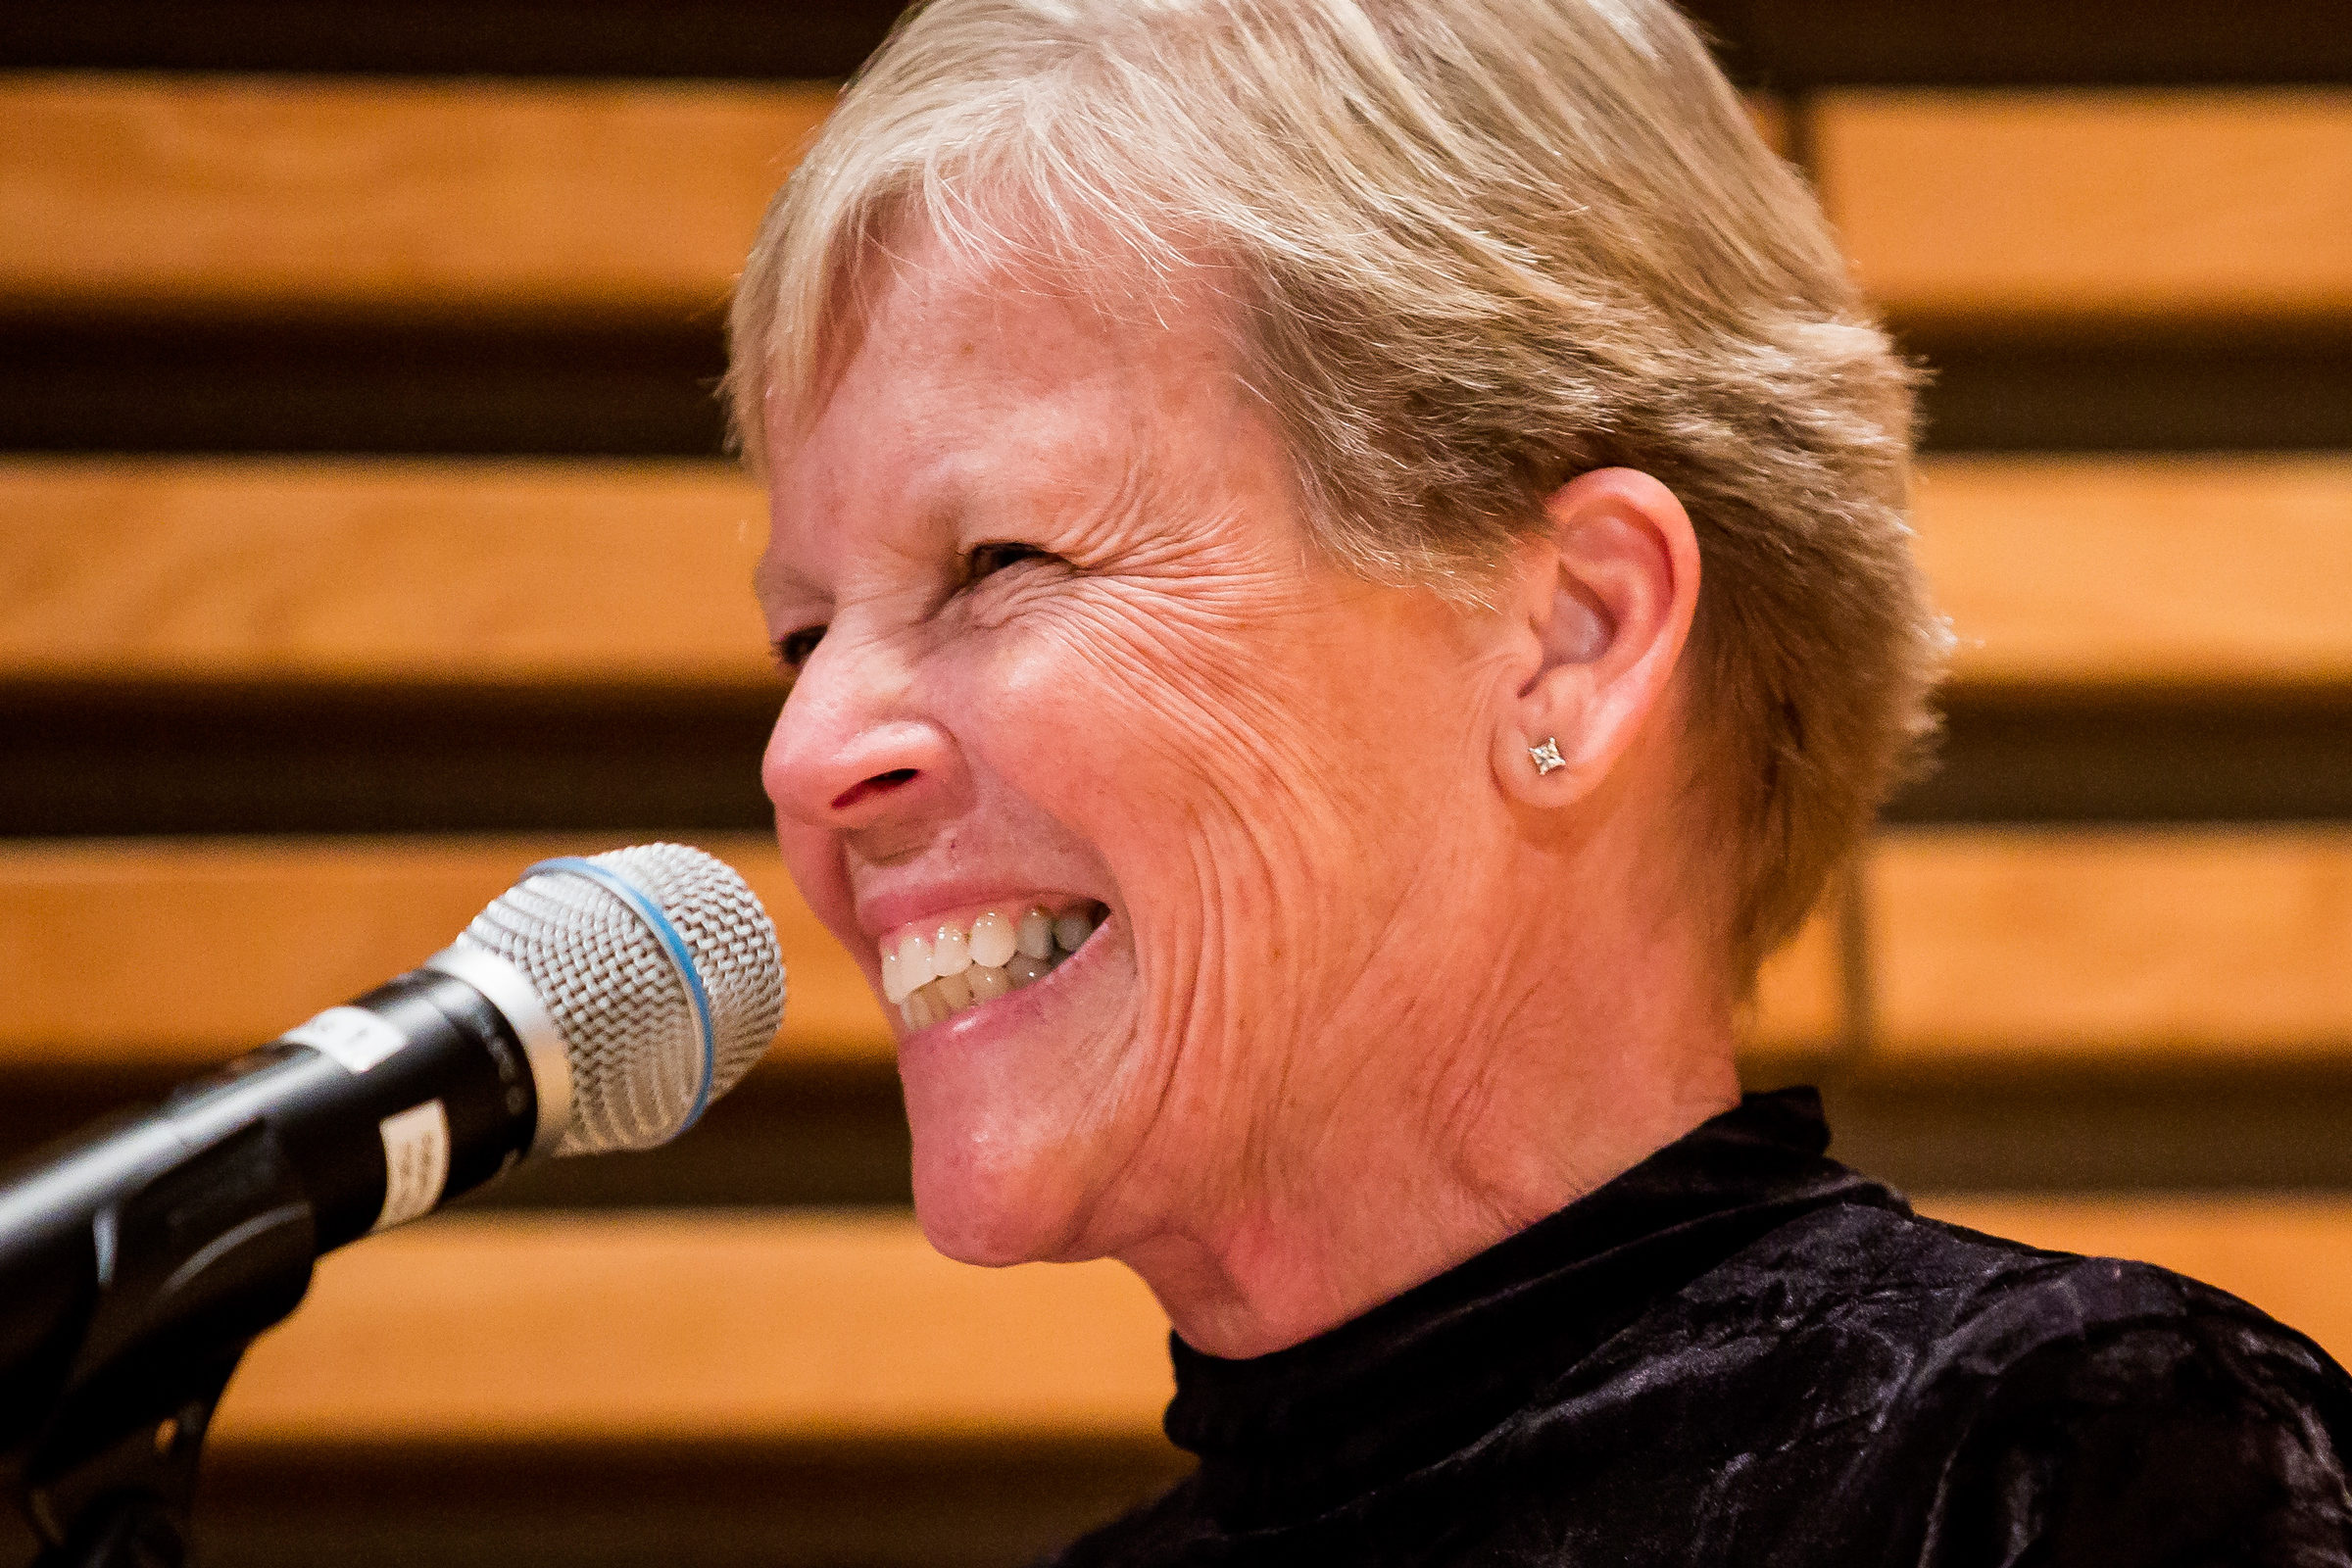 Jeanne Murabito smiling behind a microphone